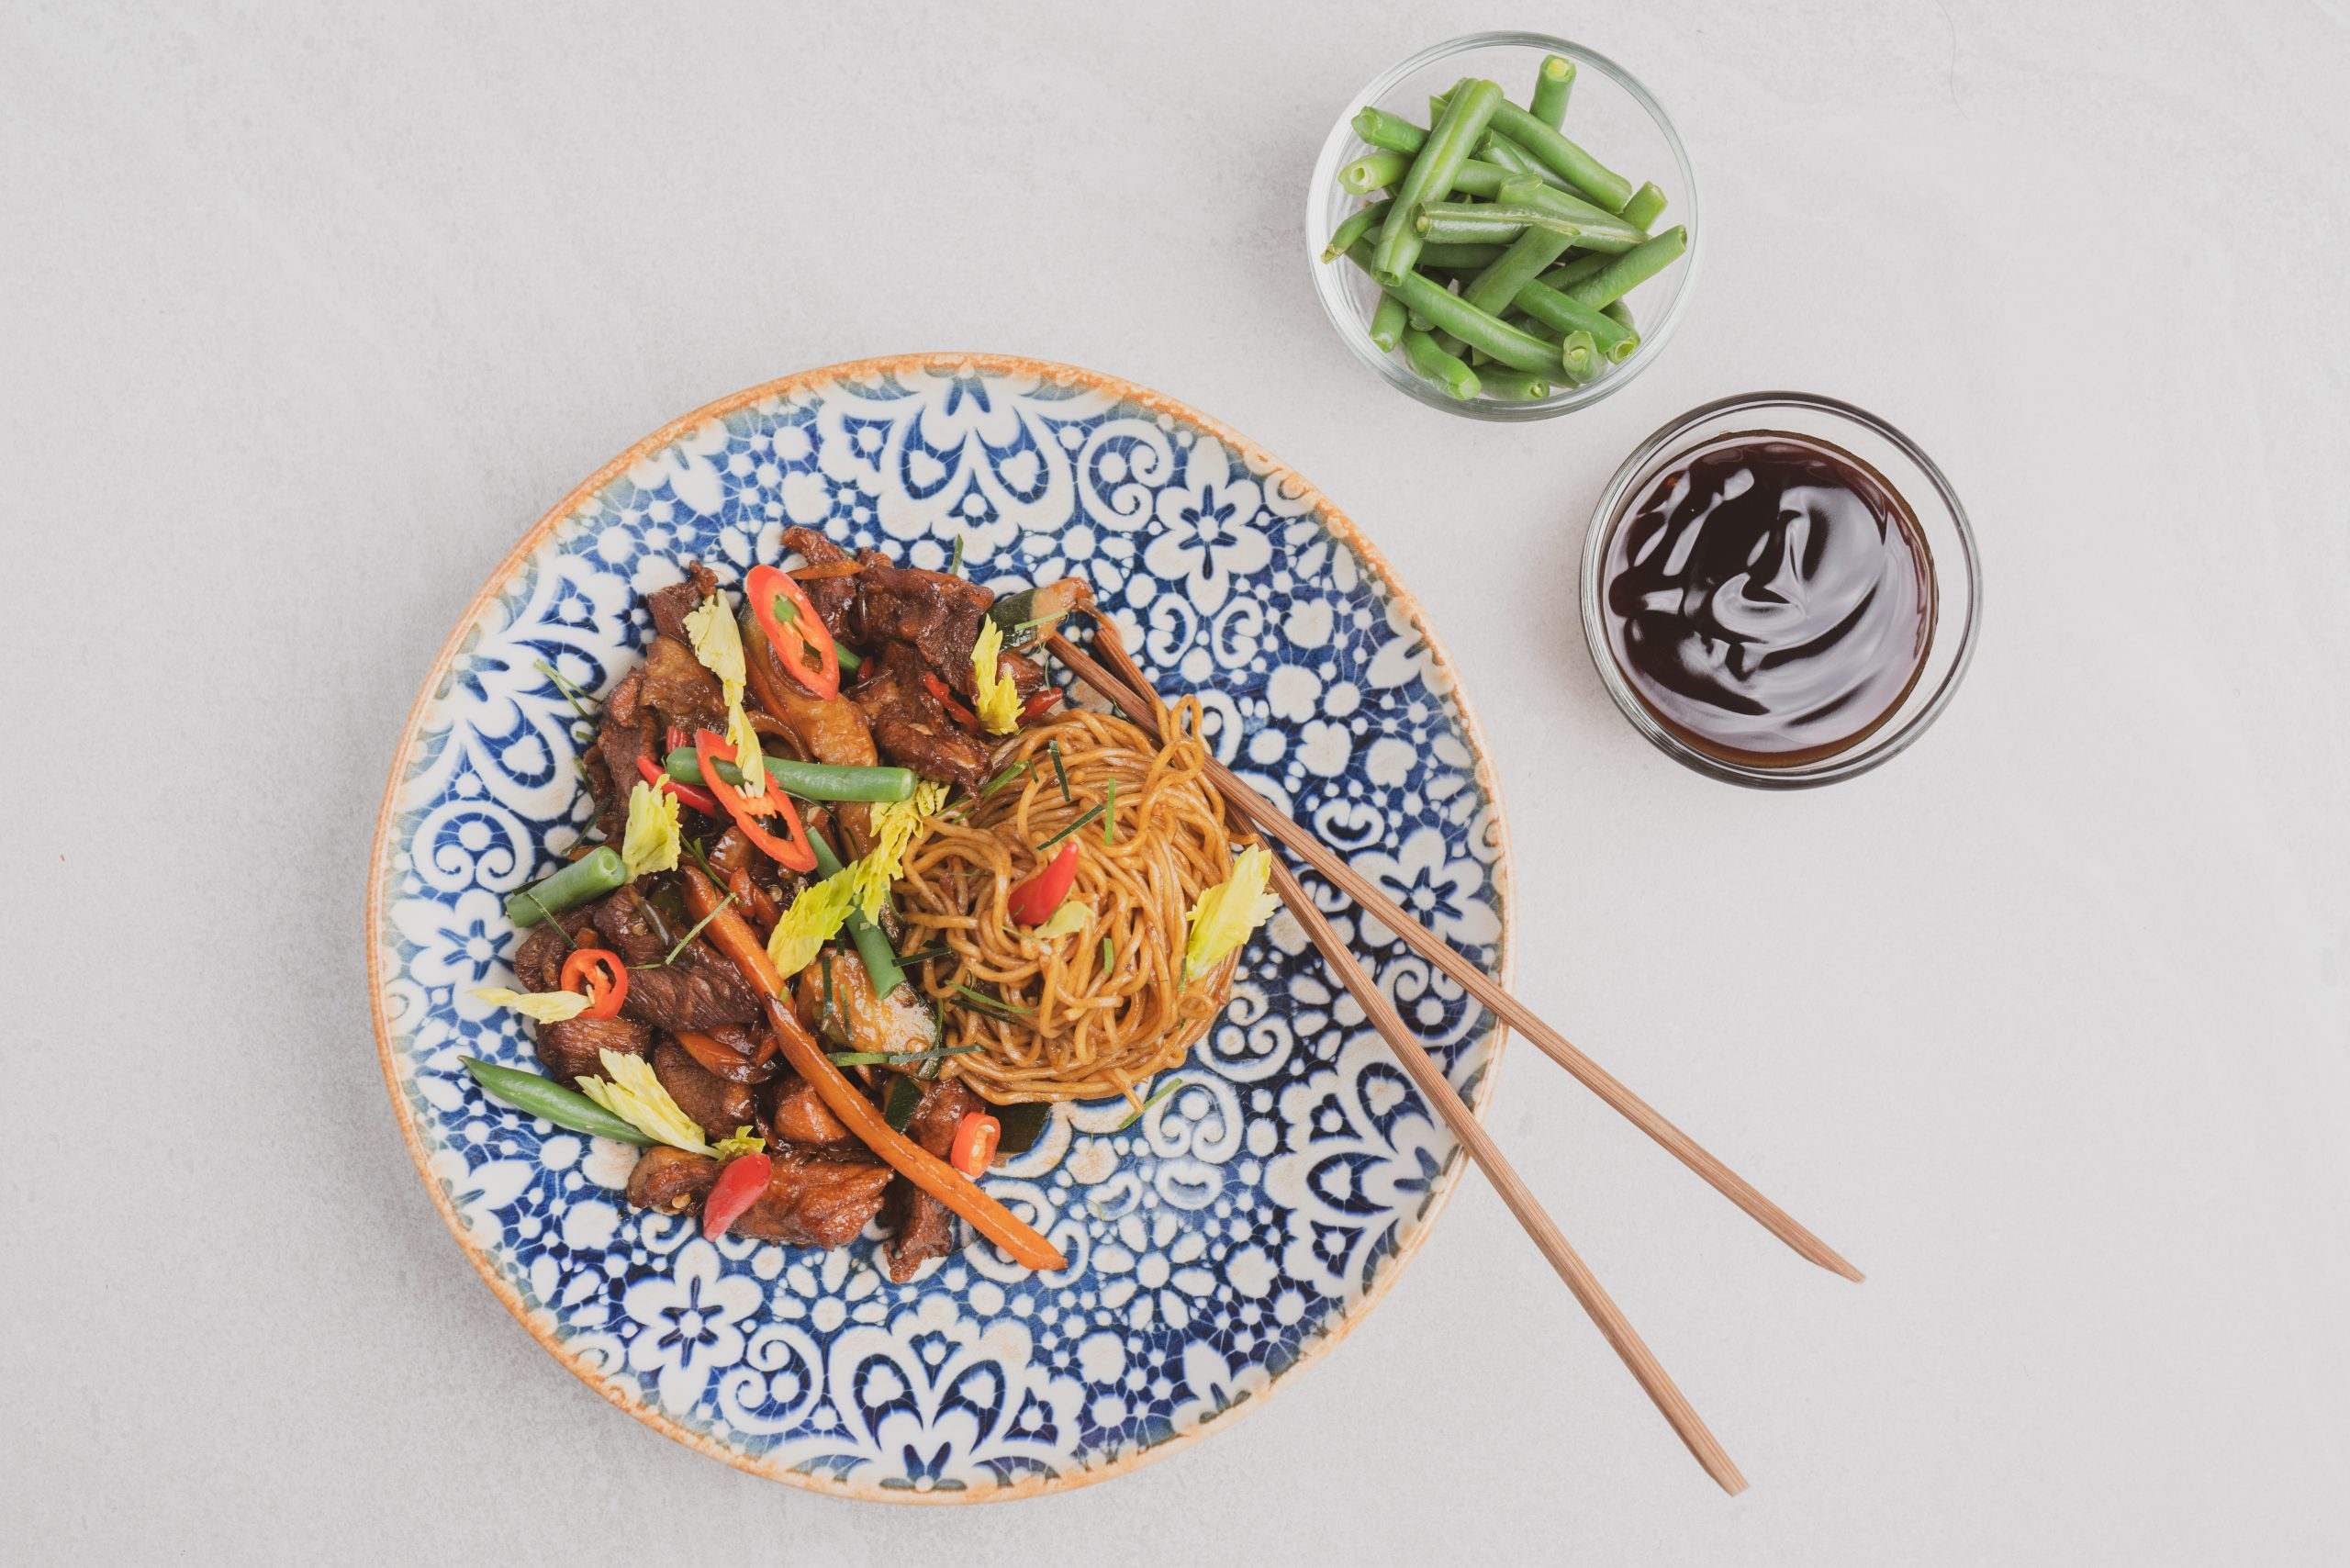 Hoisin Pork & Peas Stir Fry